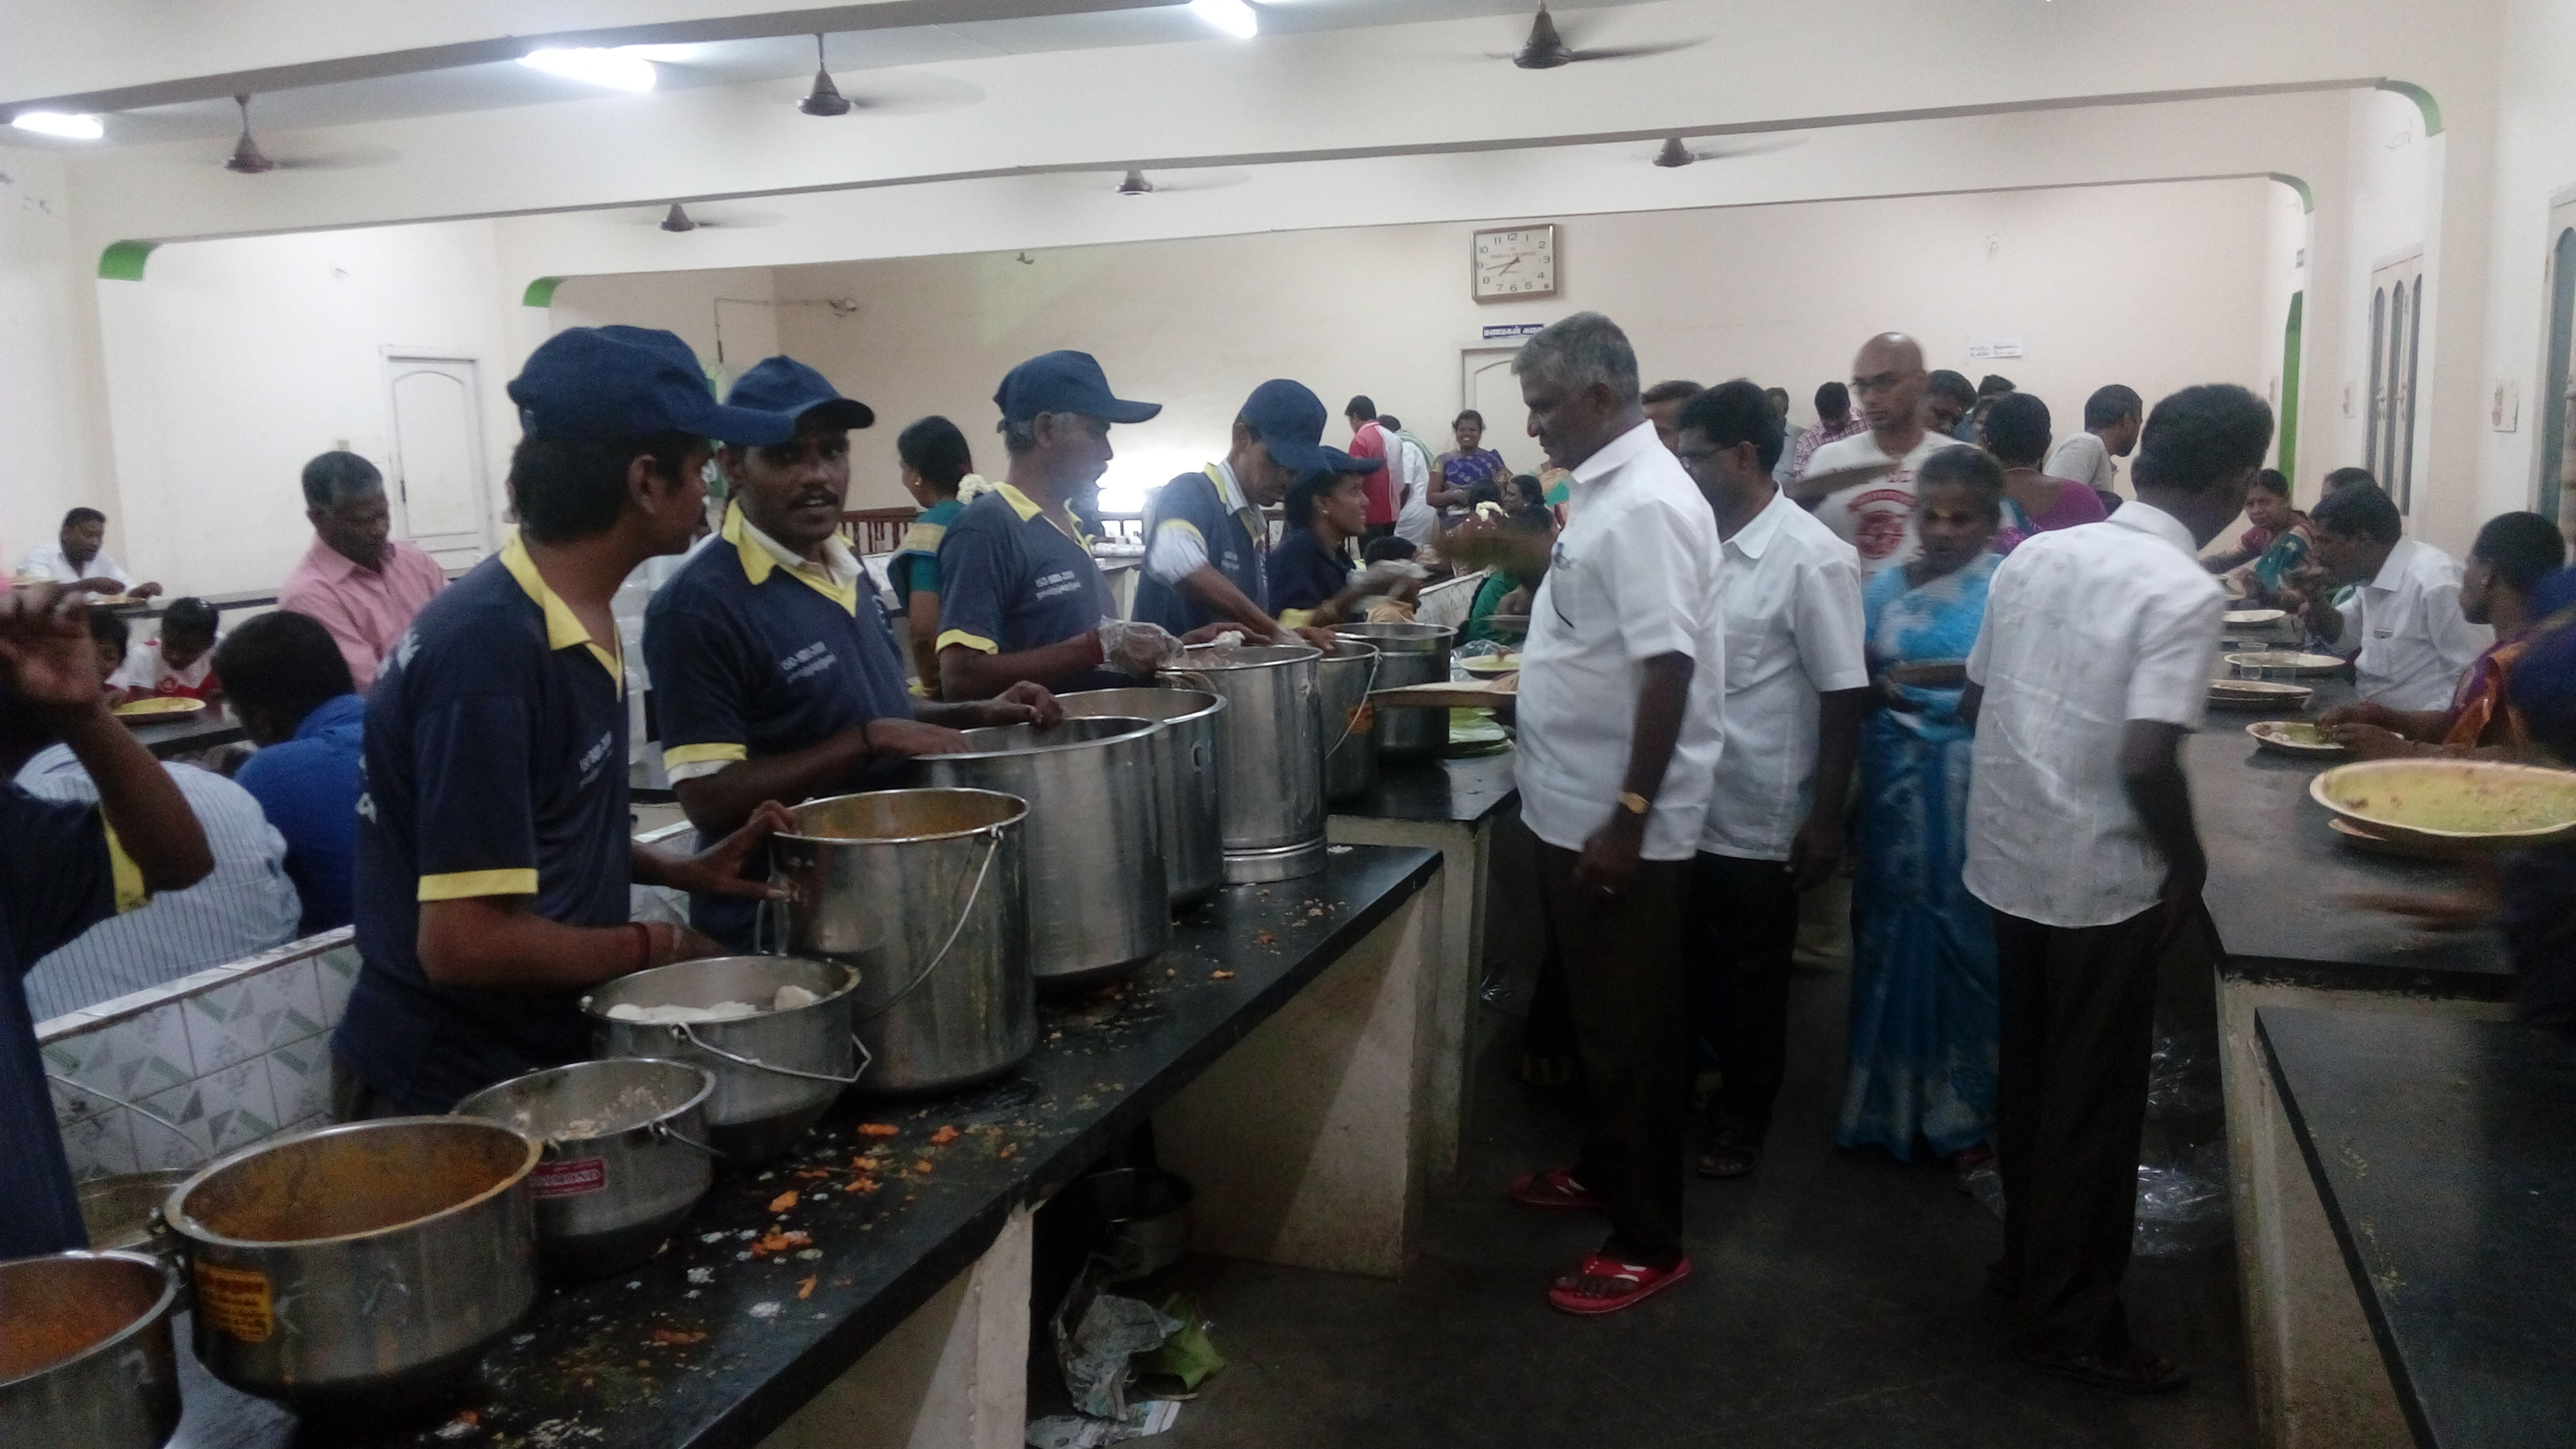 Veg Catering In Madu